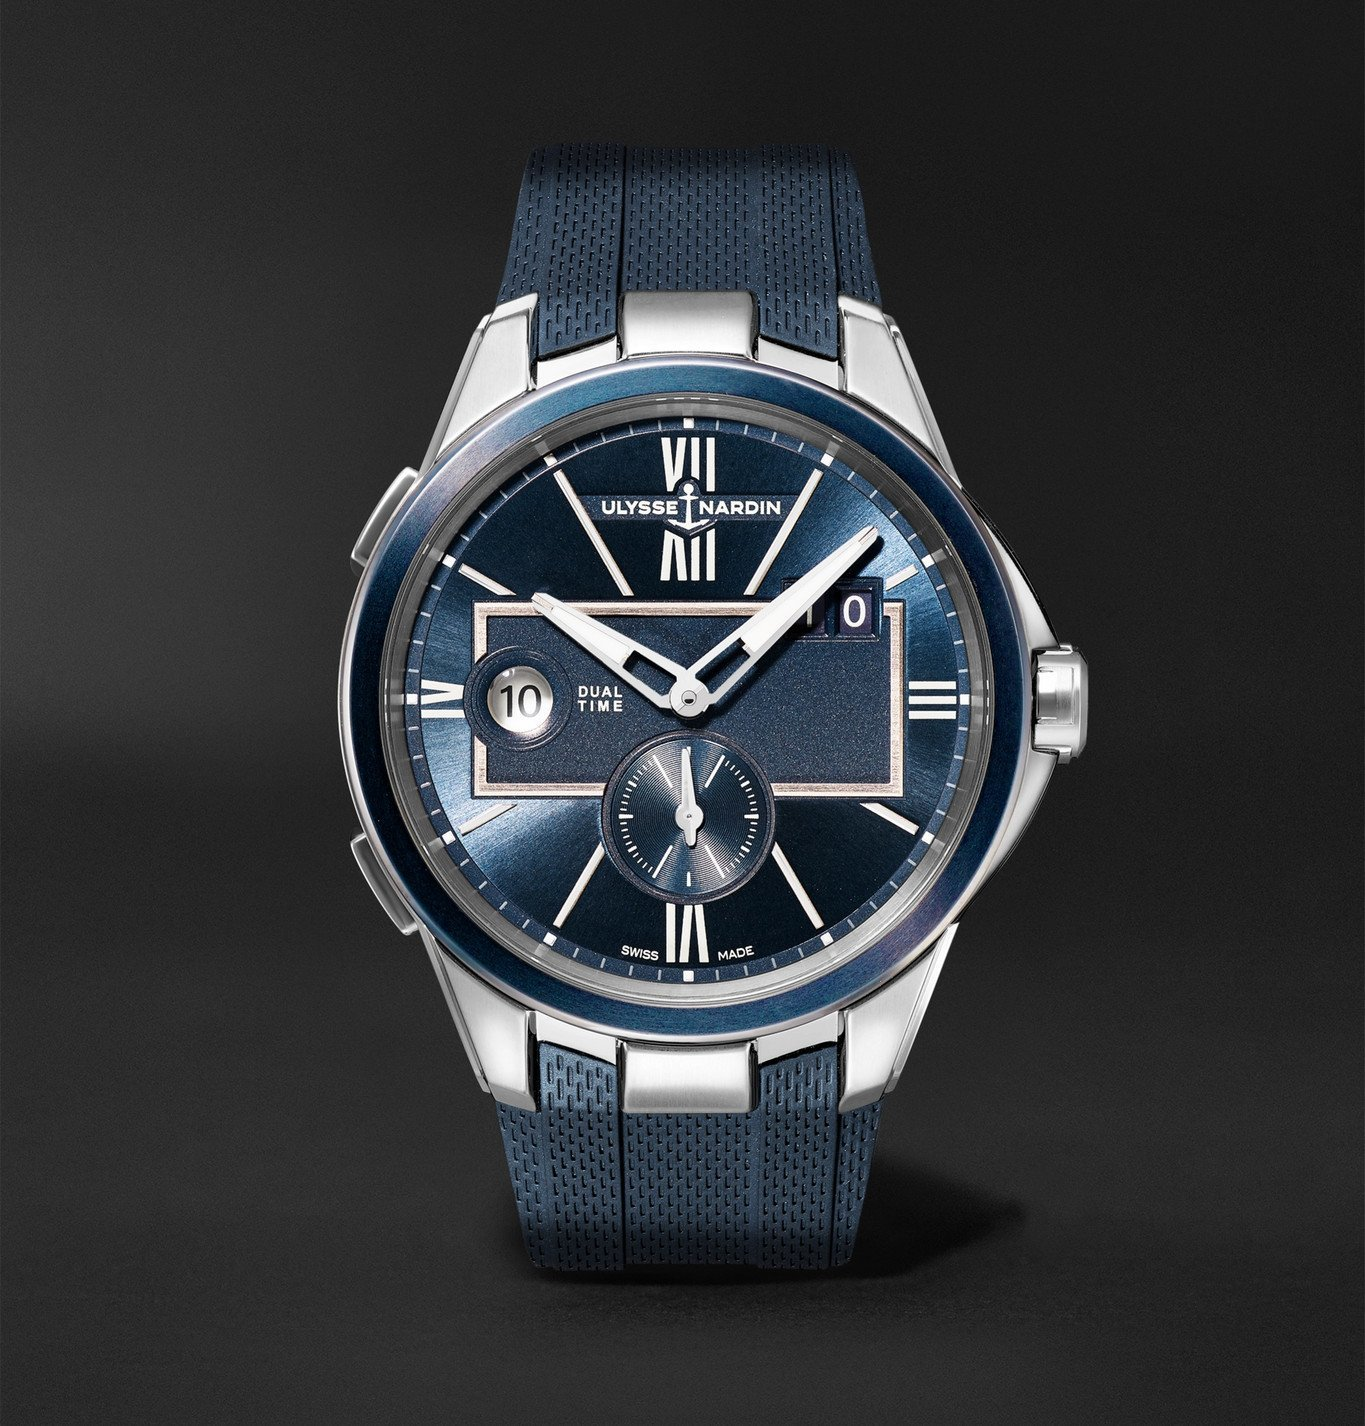 Photo: Ulysse Nardin - Dual Time Automatic 42mm Stainless Steel and Rubber Watch, Ref. No. 243-20-3/43 - Blue